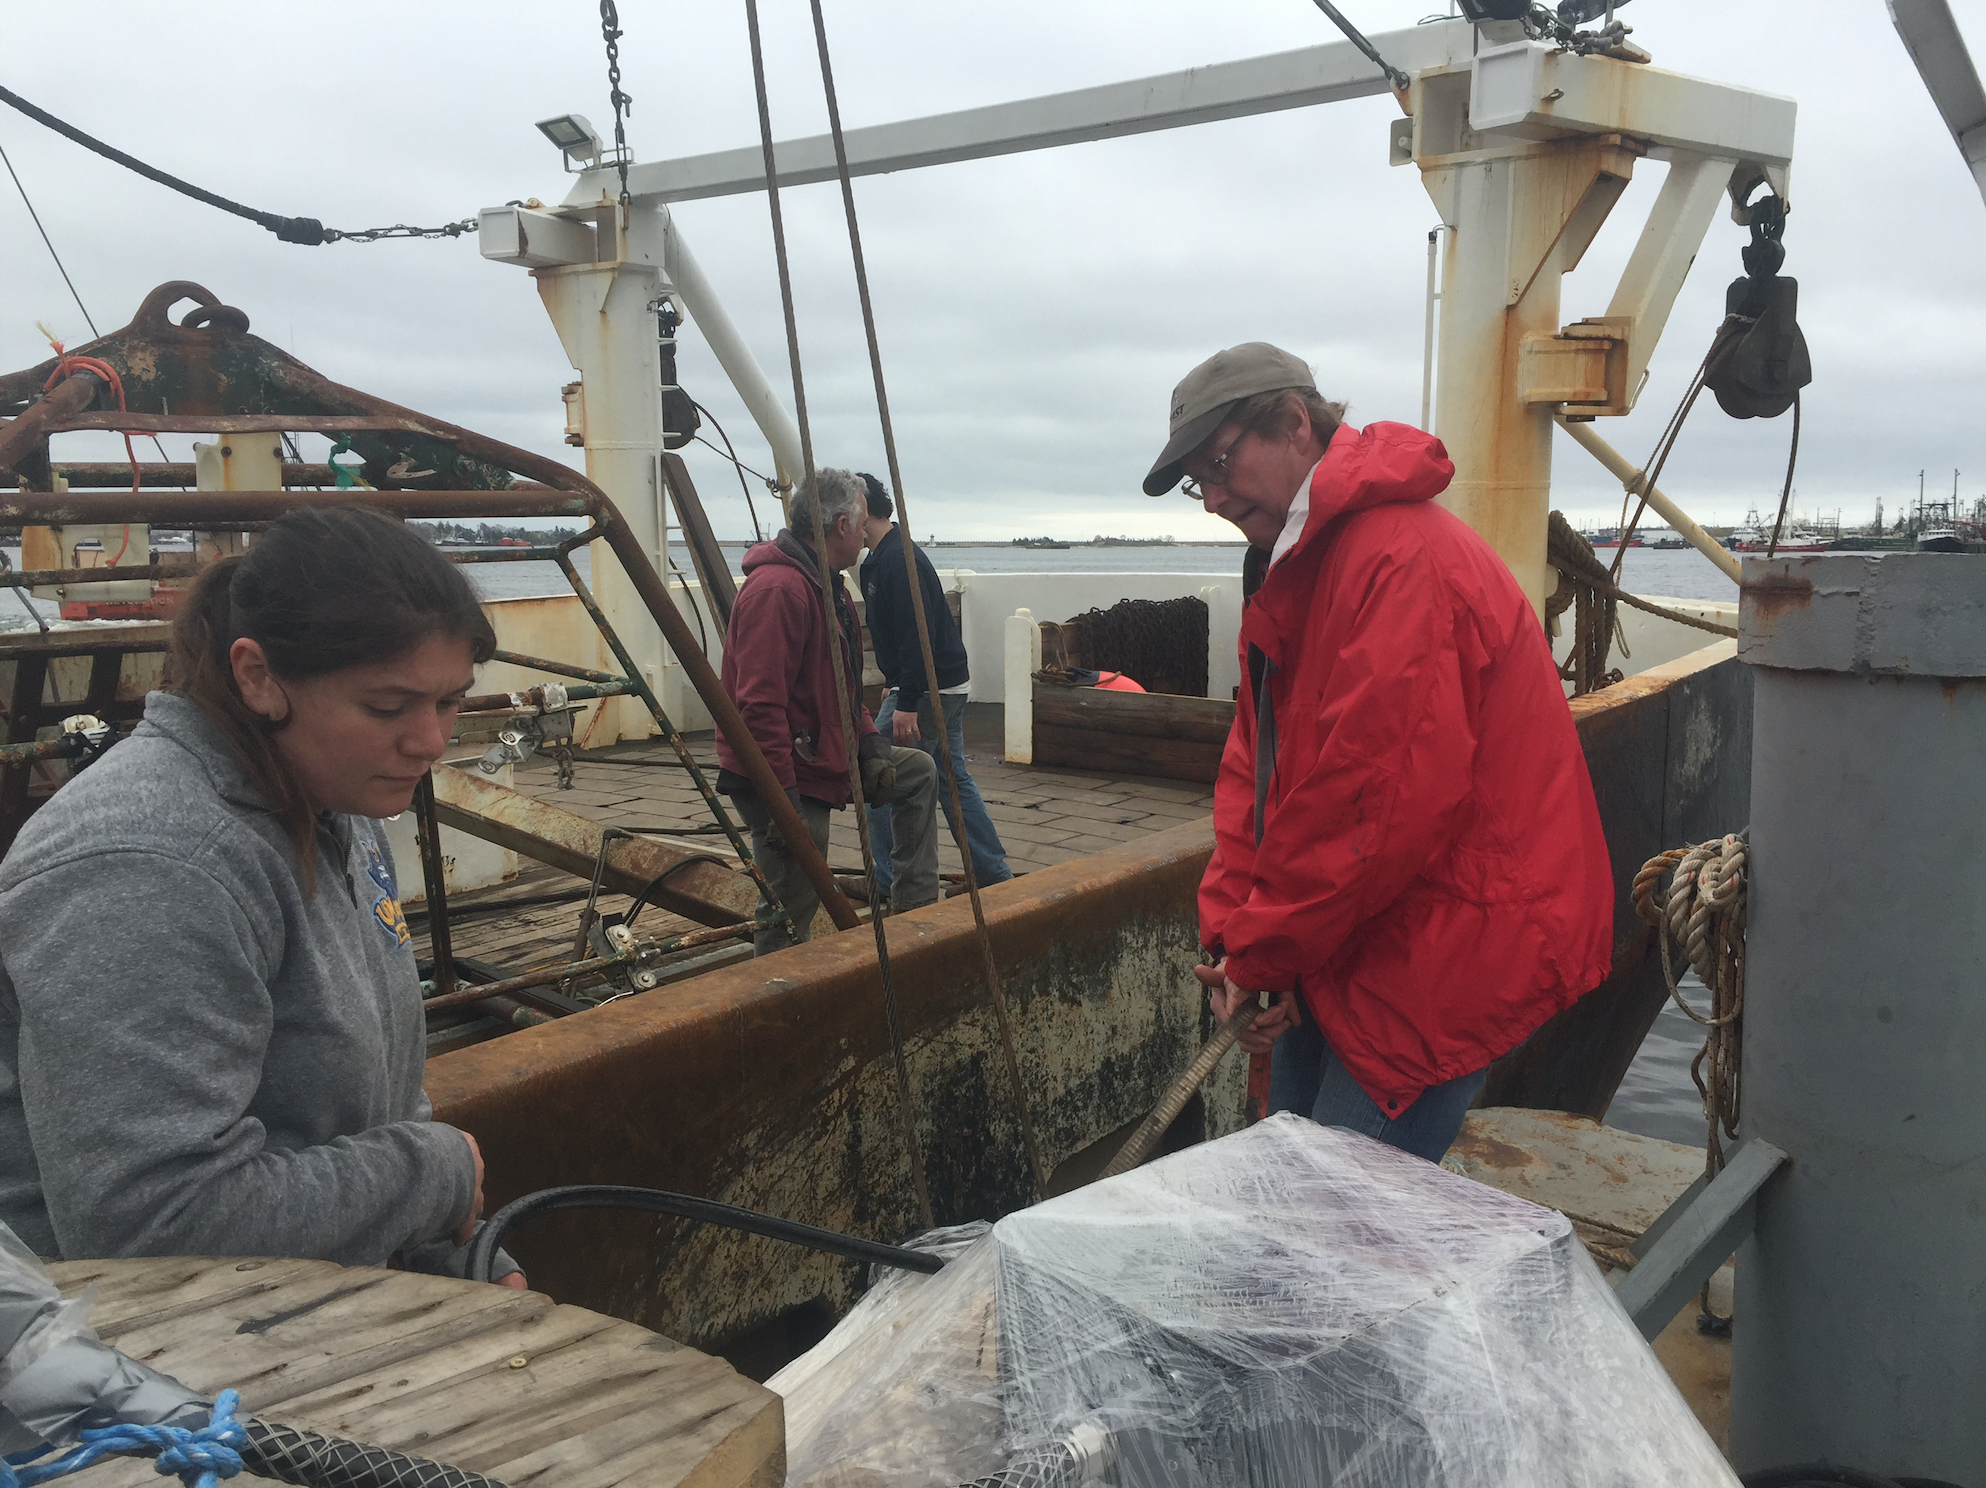 Dr. Kevin Stokebury, right, and his team on boat Liberty preparing for the last sea scallop survey before Vineyard Wind begins construction. Photo by Nadine Sebai for The Public's Radio